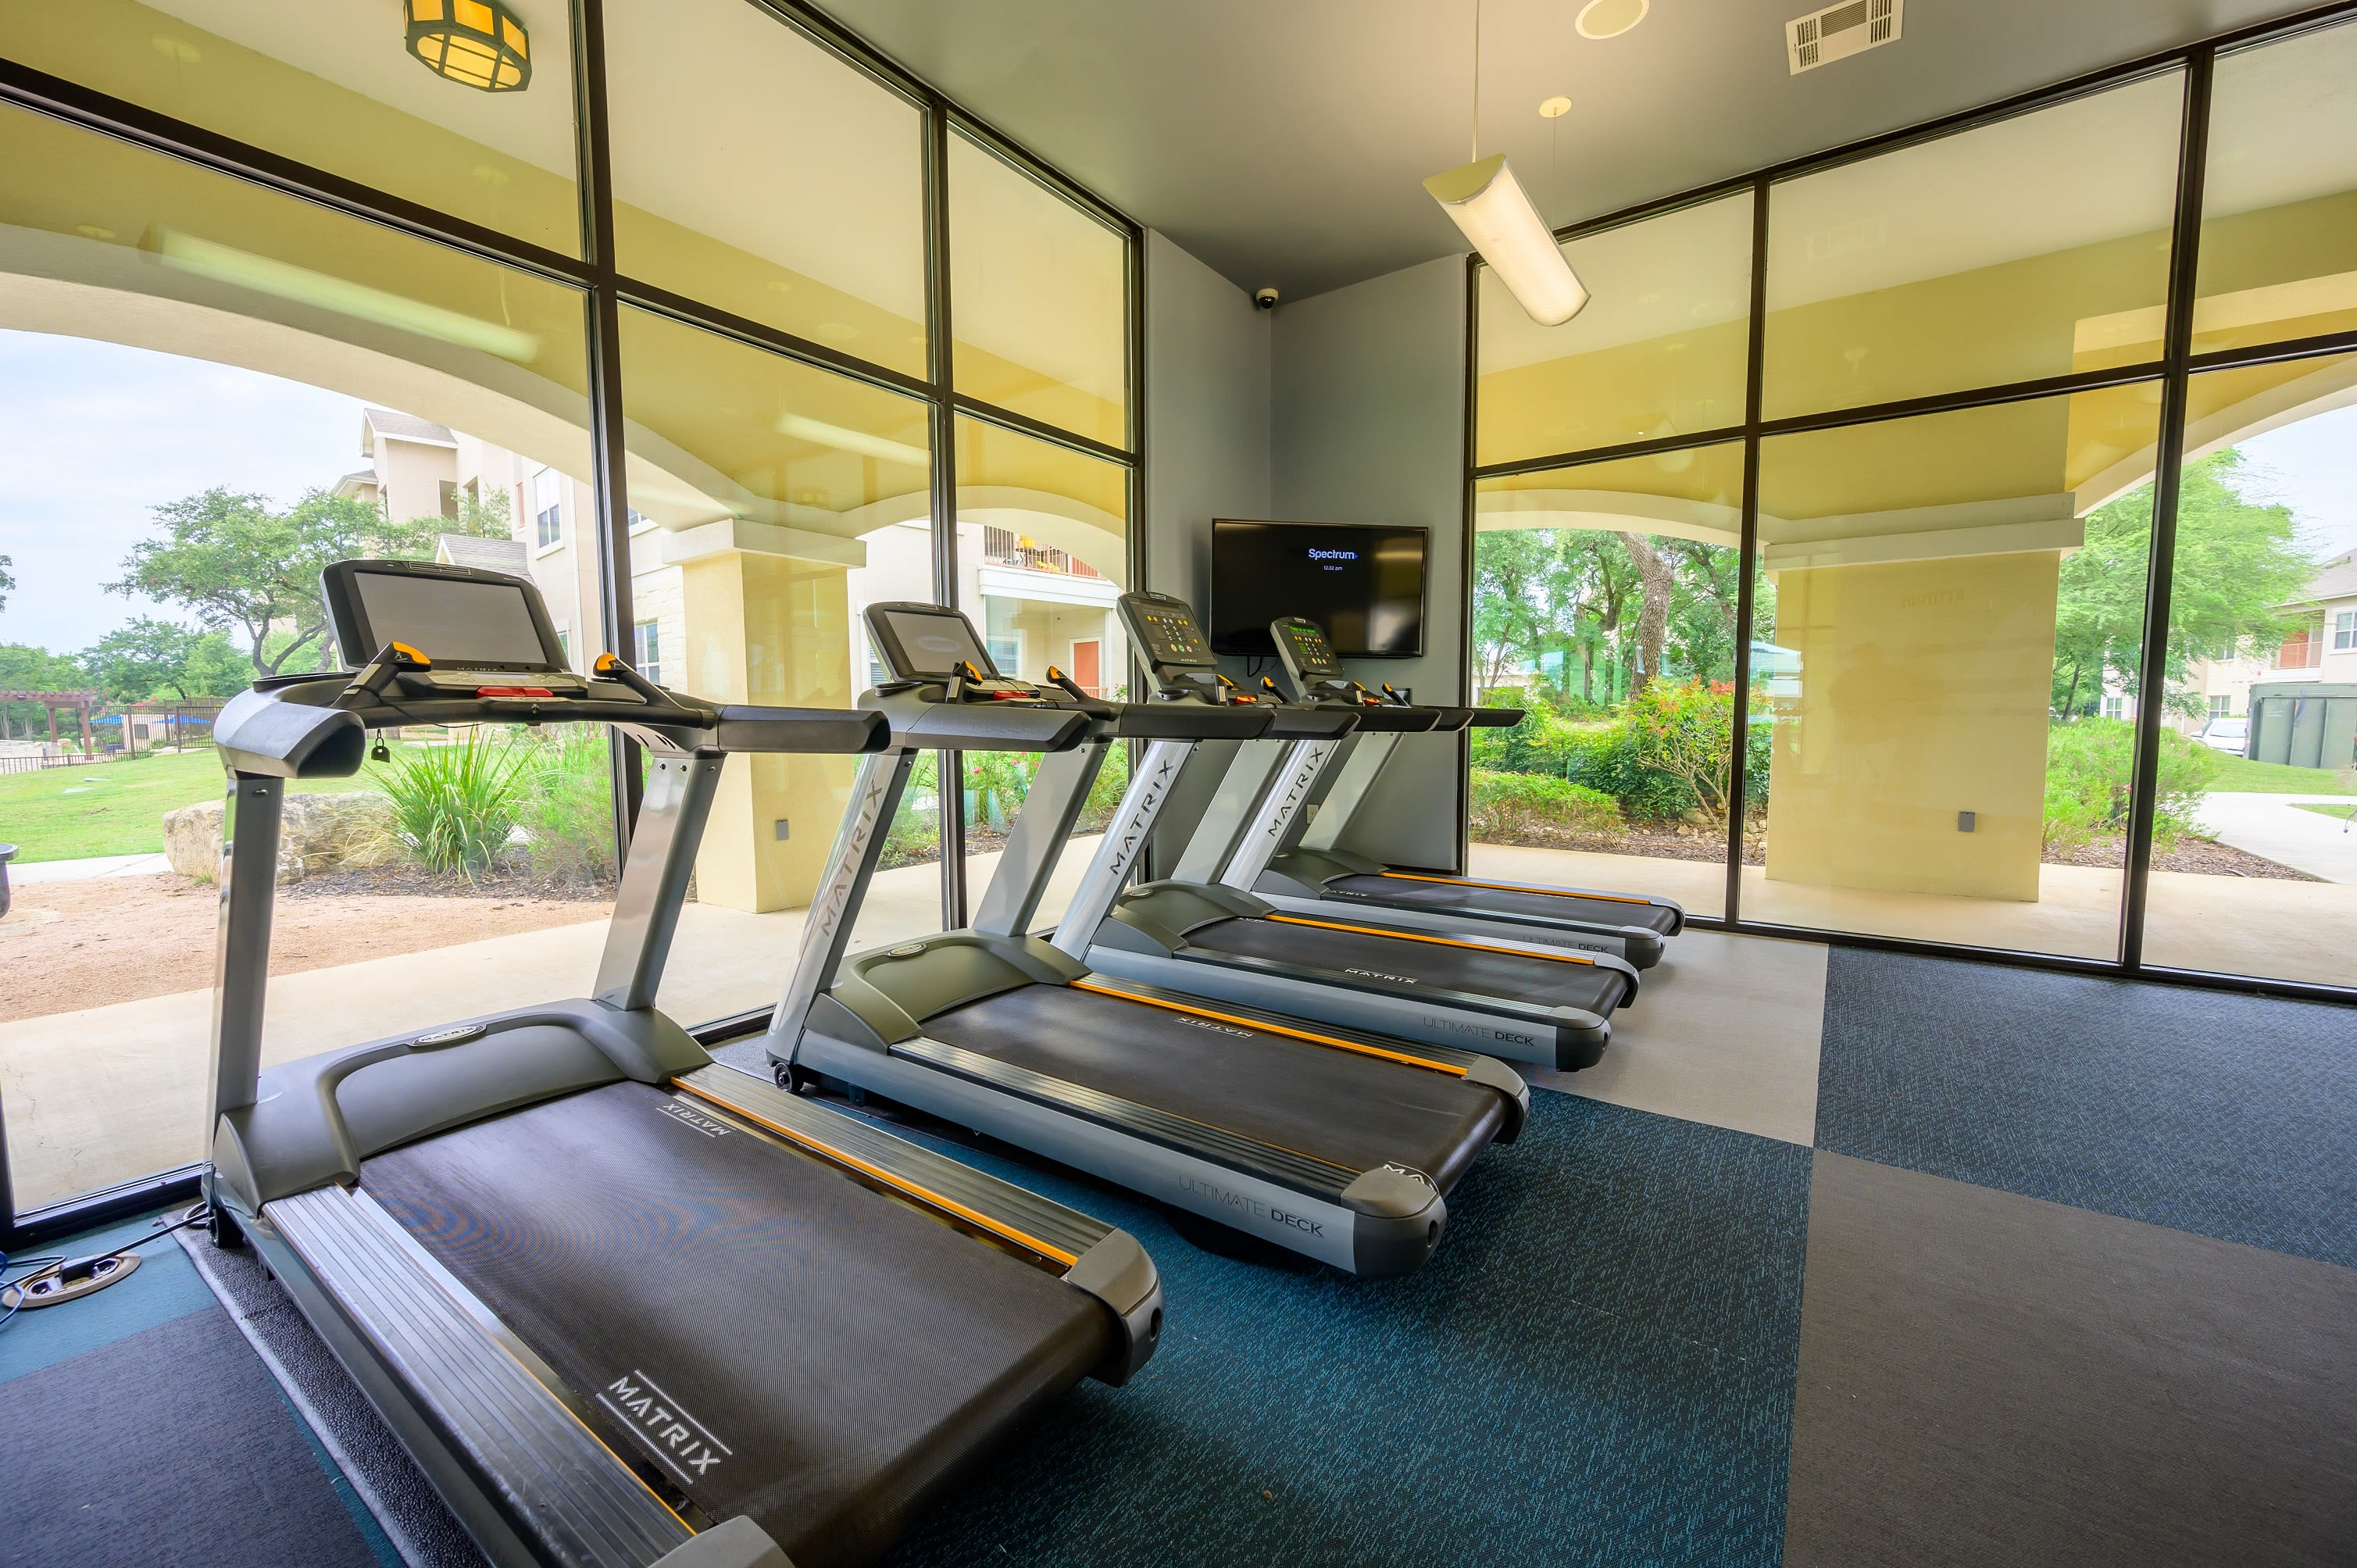 Treadmills in fitness center at Pecan Springs Apartments